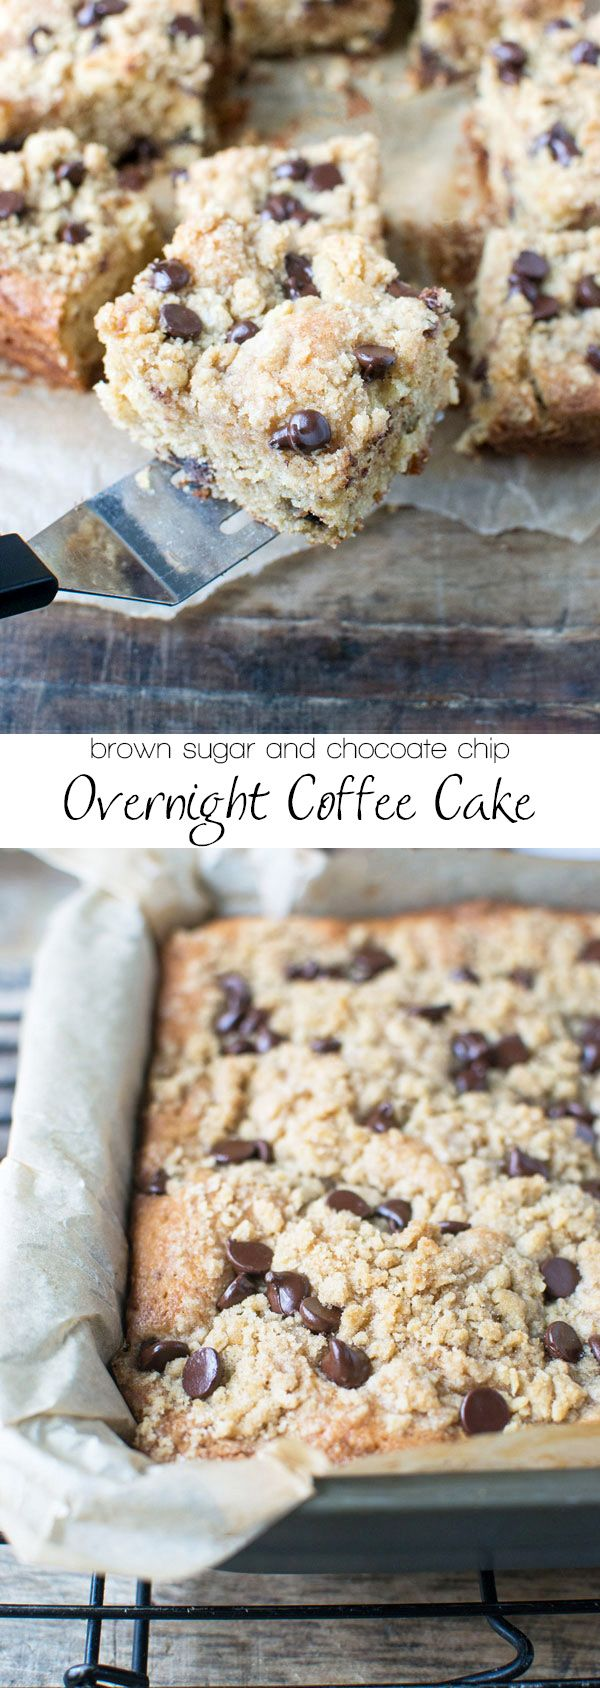 Sour cream coffee cake the frugal chef - Chocolate Chip Coffee Cake With Streusel Topping Cake Toppingssour Cream